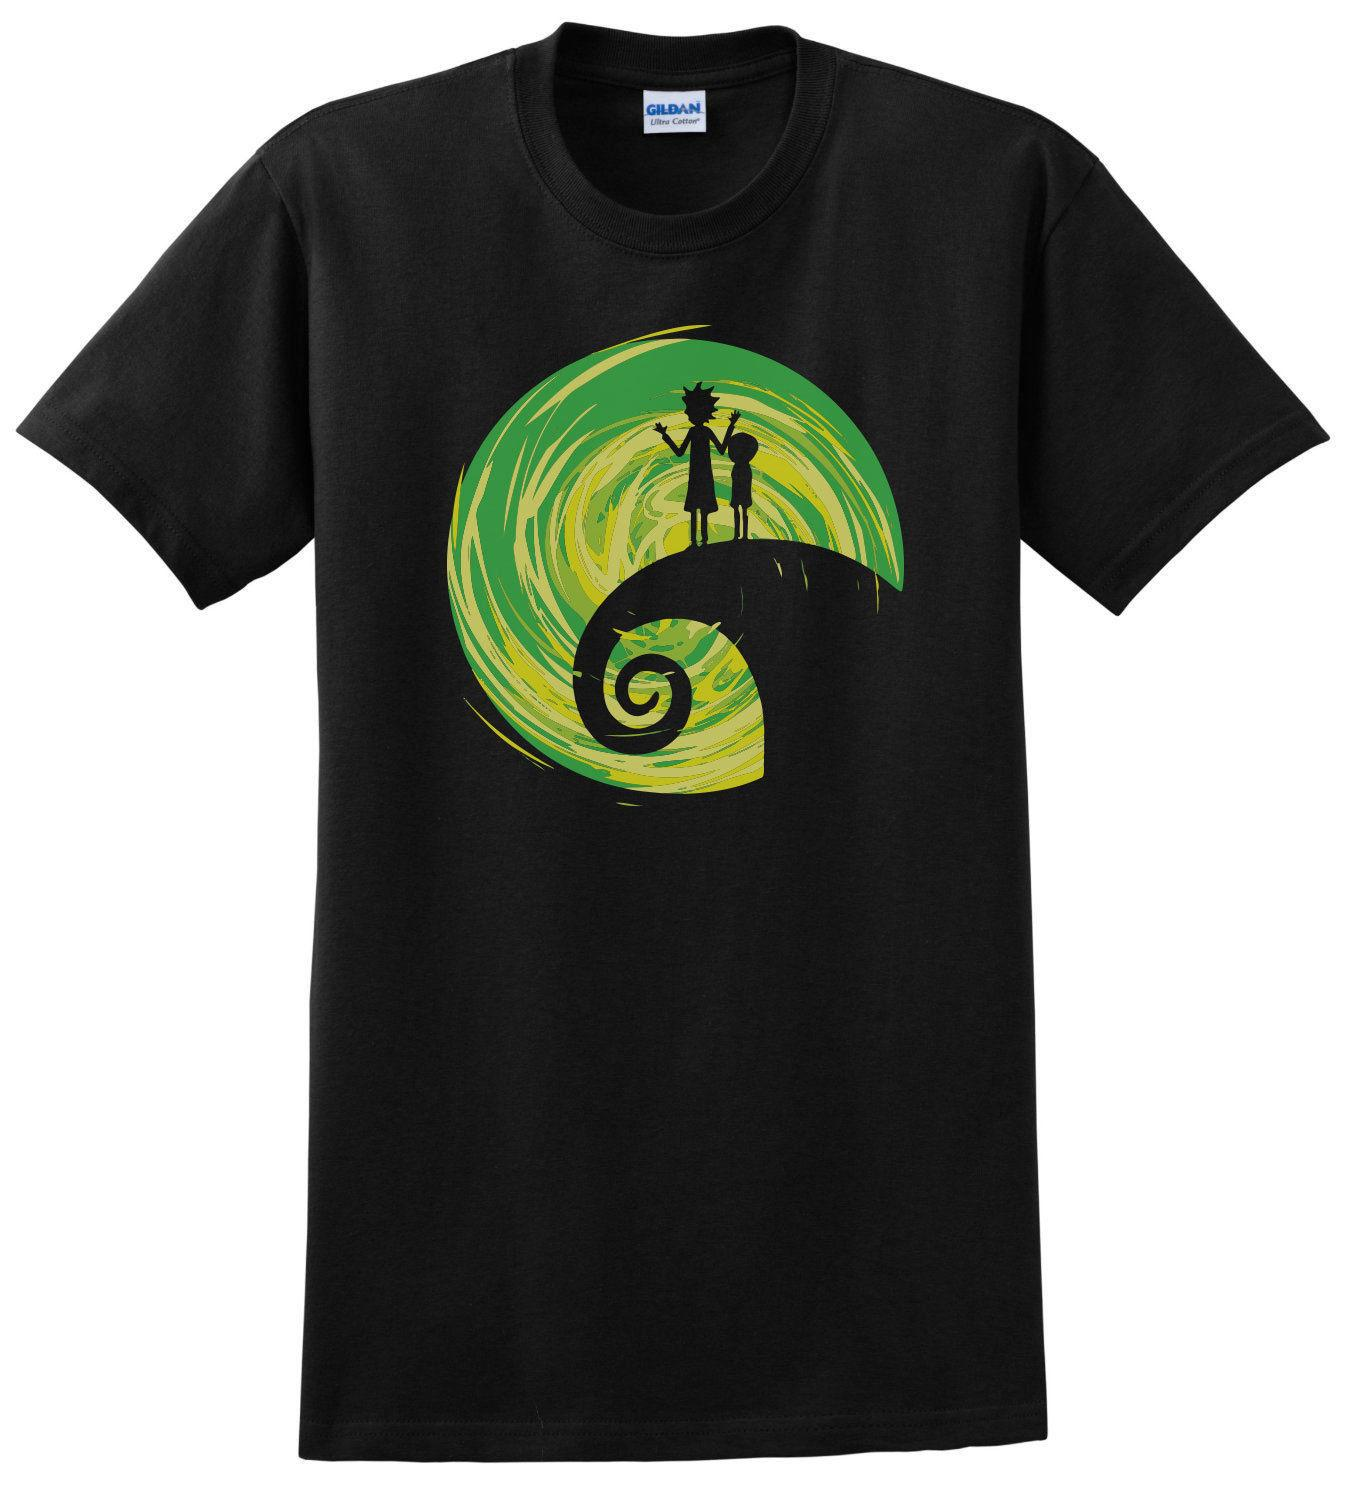 R&M The Nightmare Before Christmas Mash Up Comedy T Shirt T Shirt ...